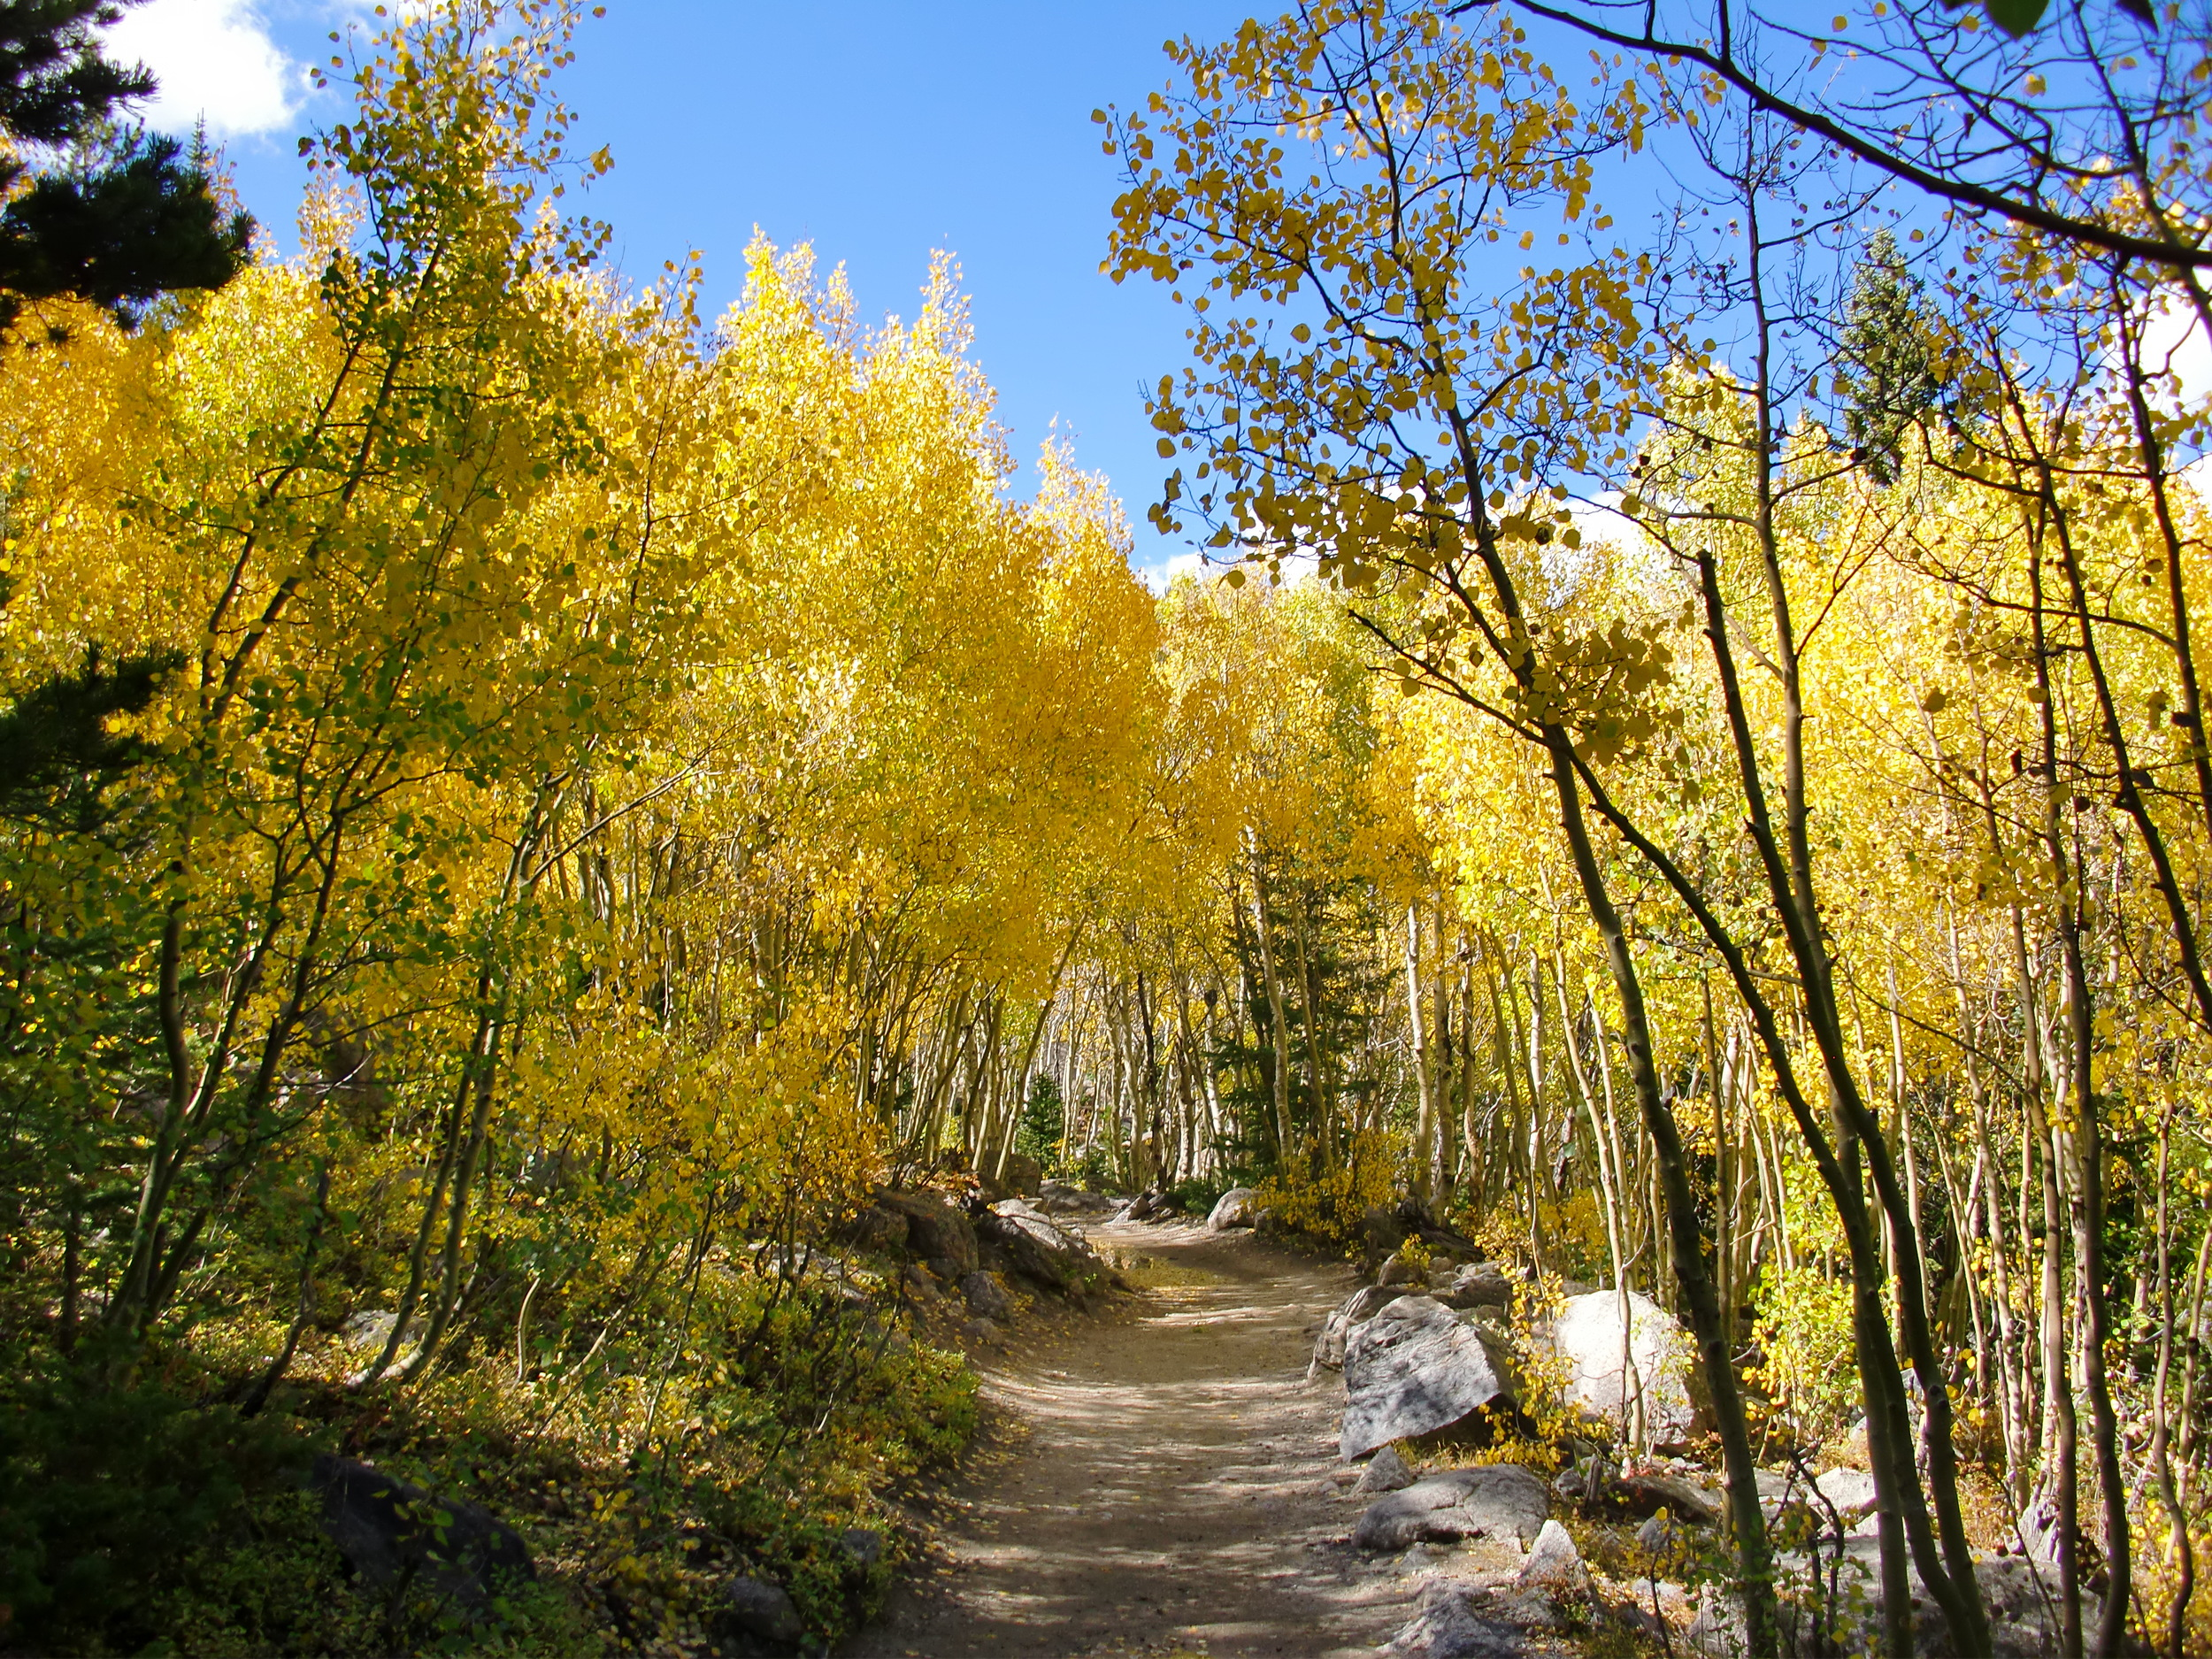 Trail to Alberta Falls in September...the aspen groves are beautiful!